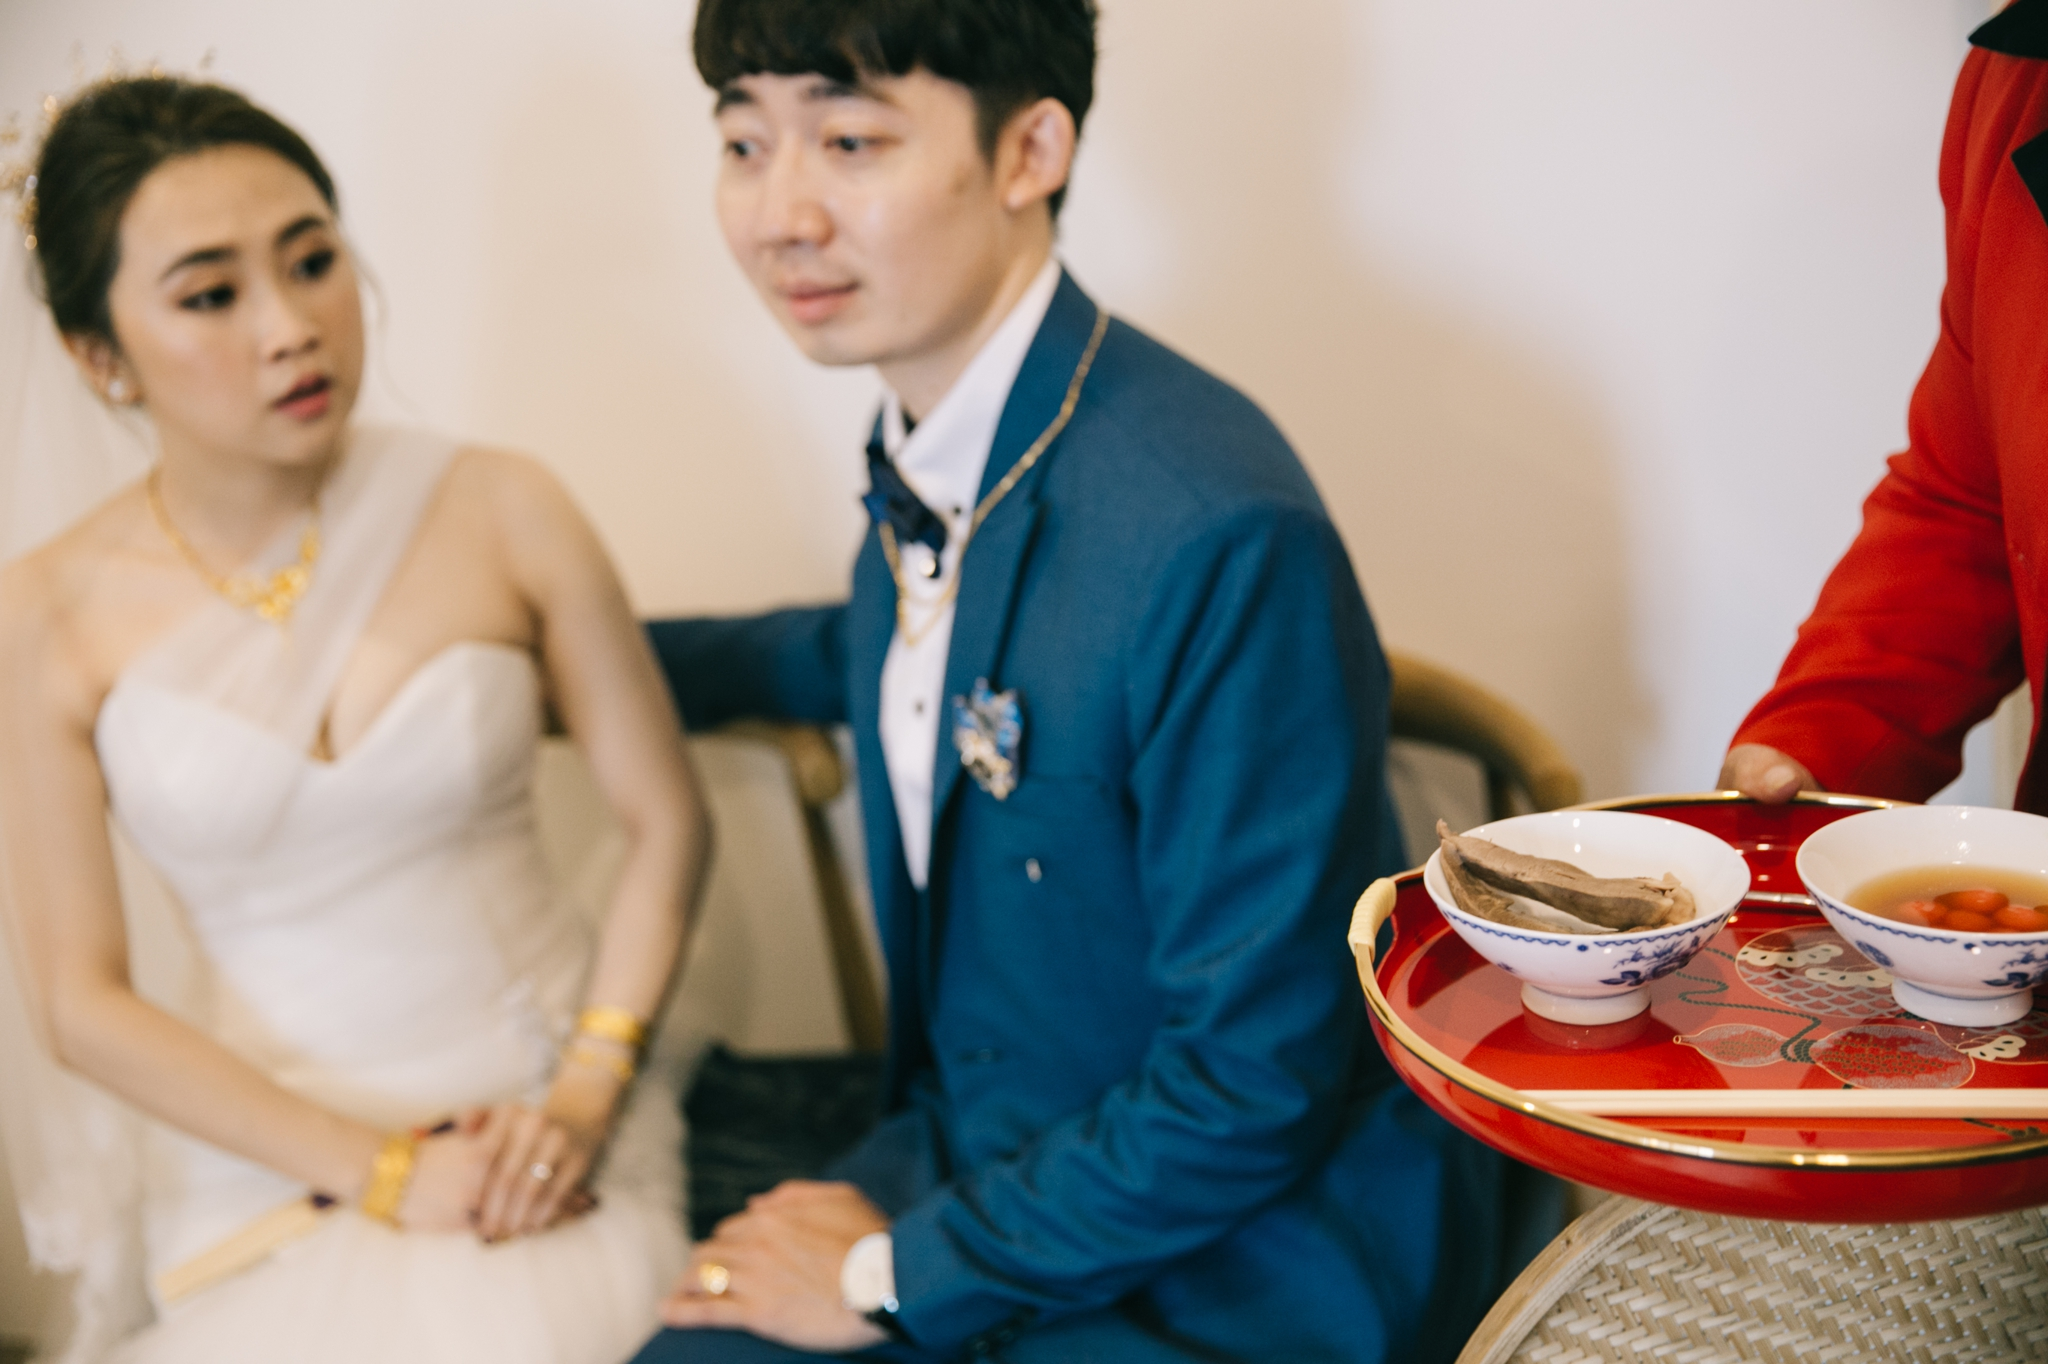 Keddy+Richard-wedding-新莊頤品飯店-132.jpg